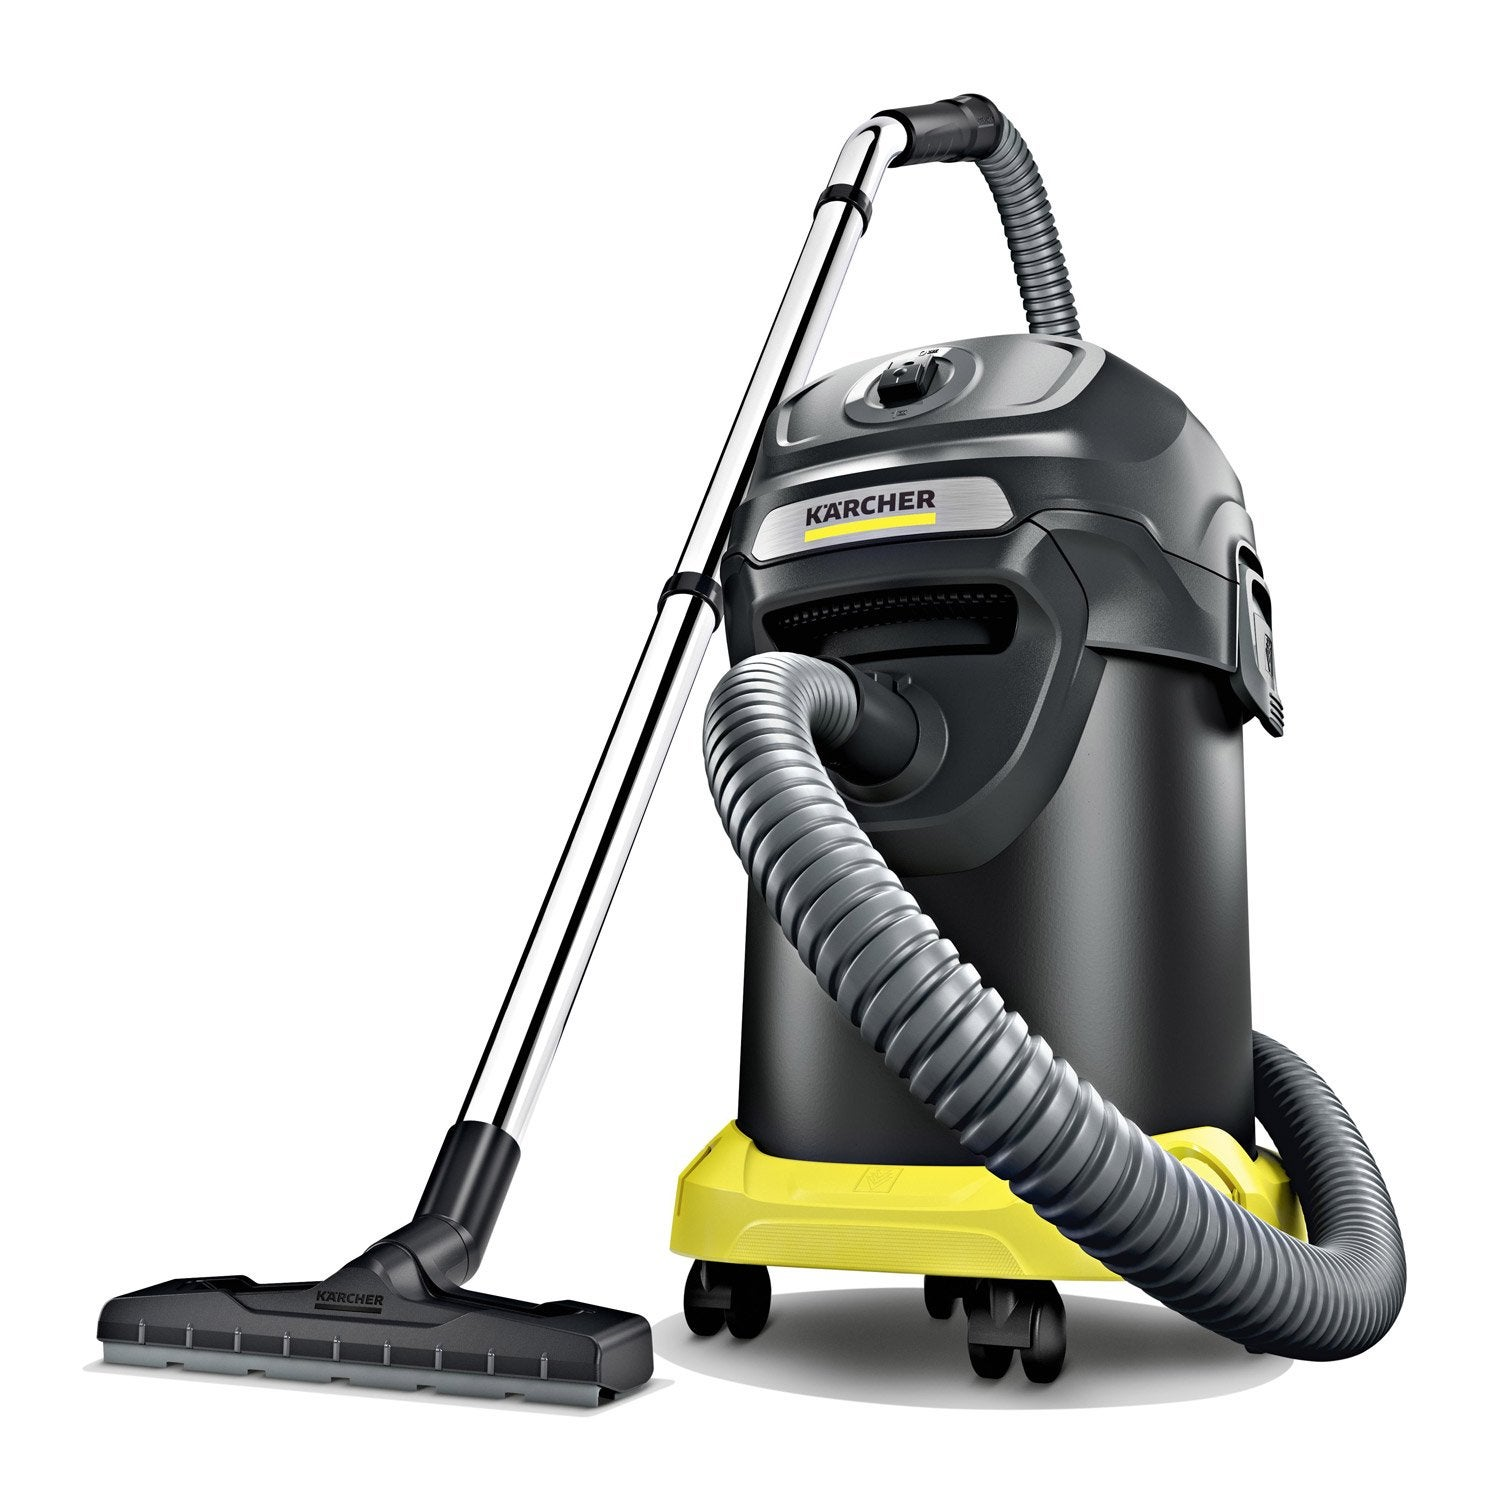 aspirateur karcher maison krcher aspirateur eau et poussires nt ap with aspirateur karcher. Black Bedroom Furniture Sets. Home Design Ideas